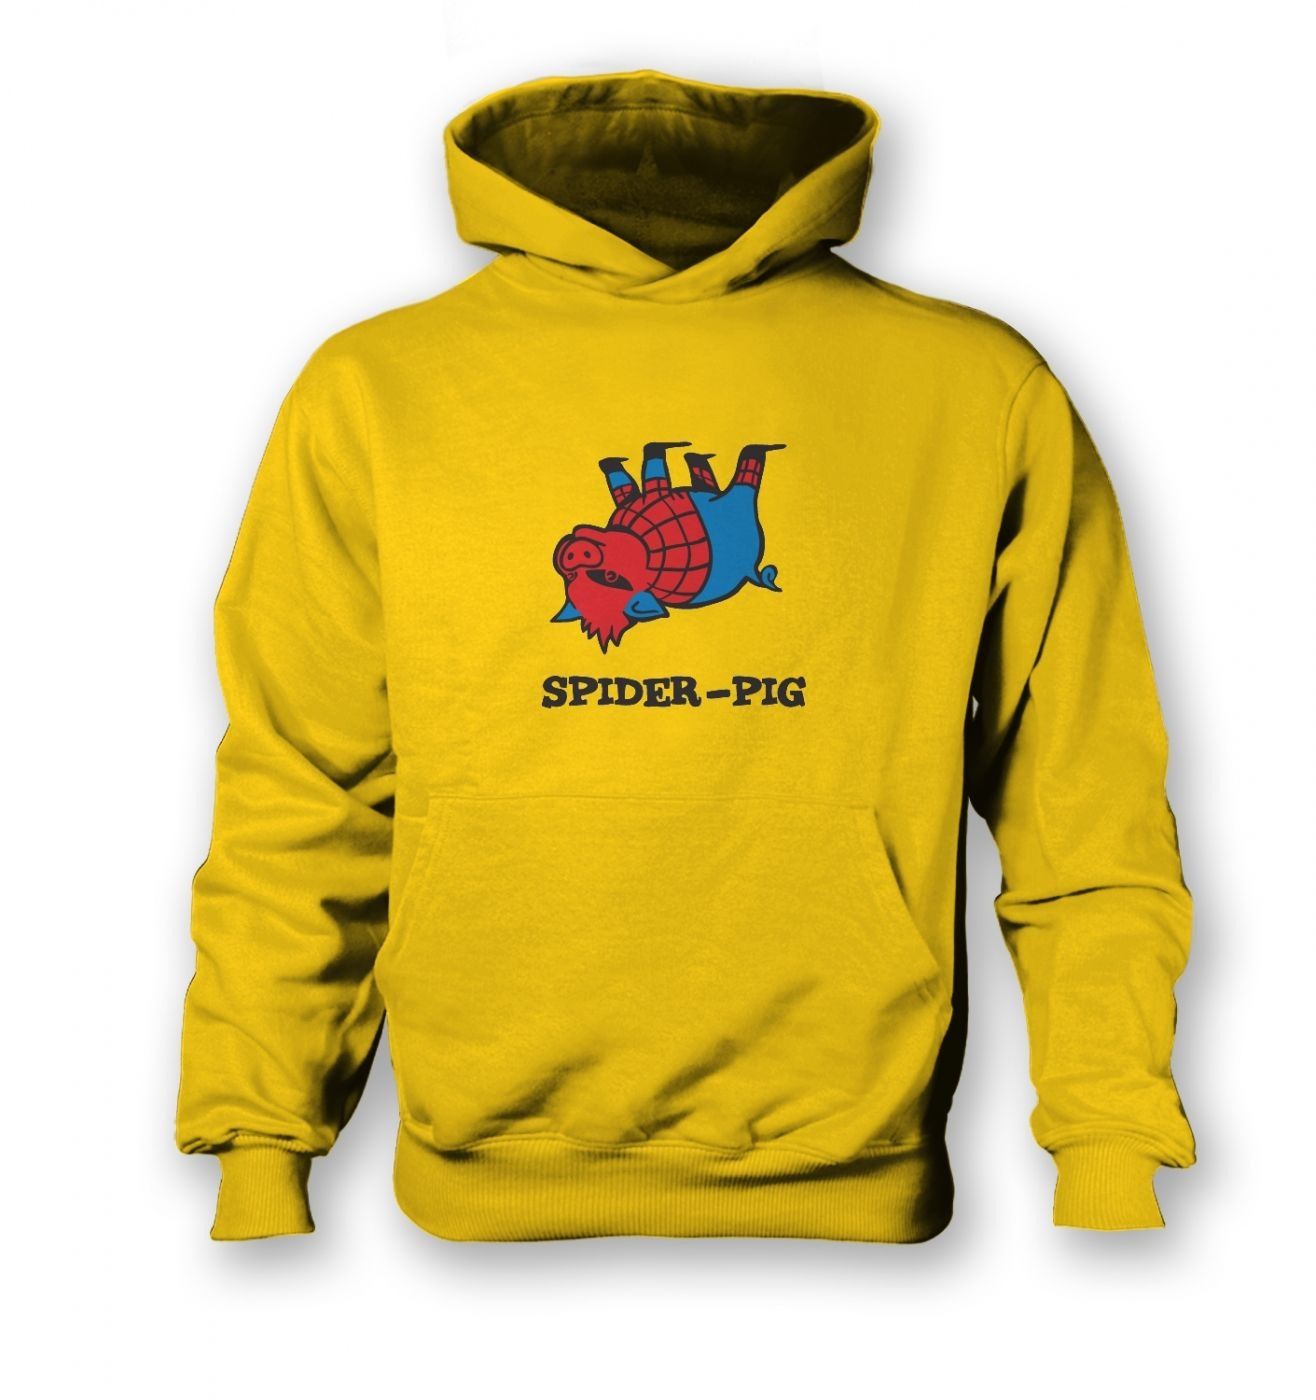 Spider Pig kids hoodie  - Inspired by The Simpsons